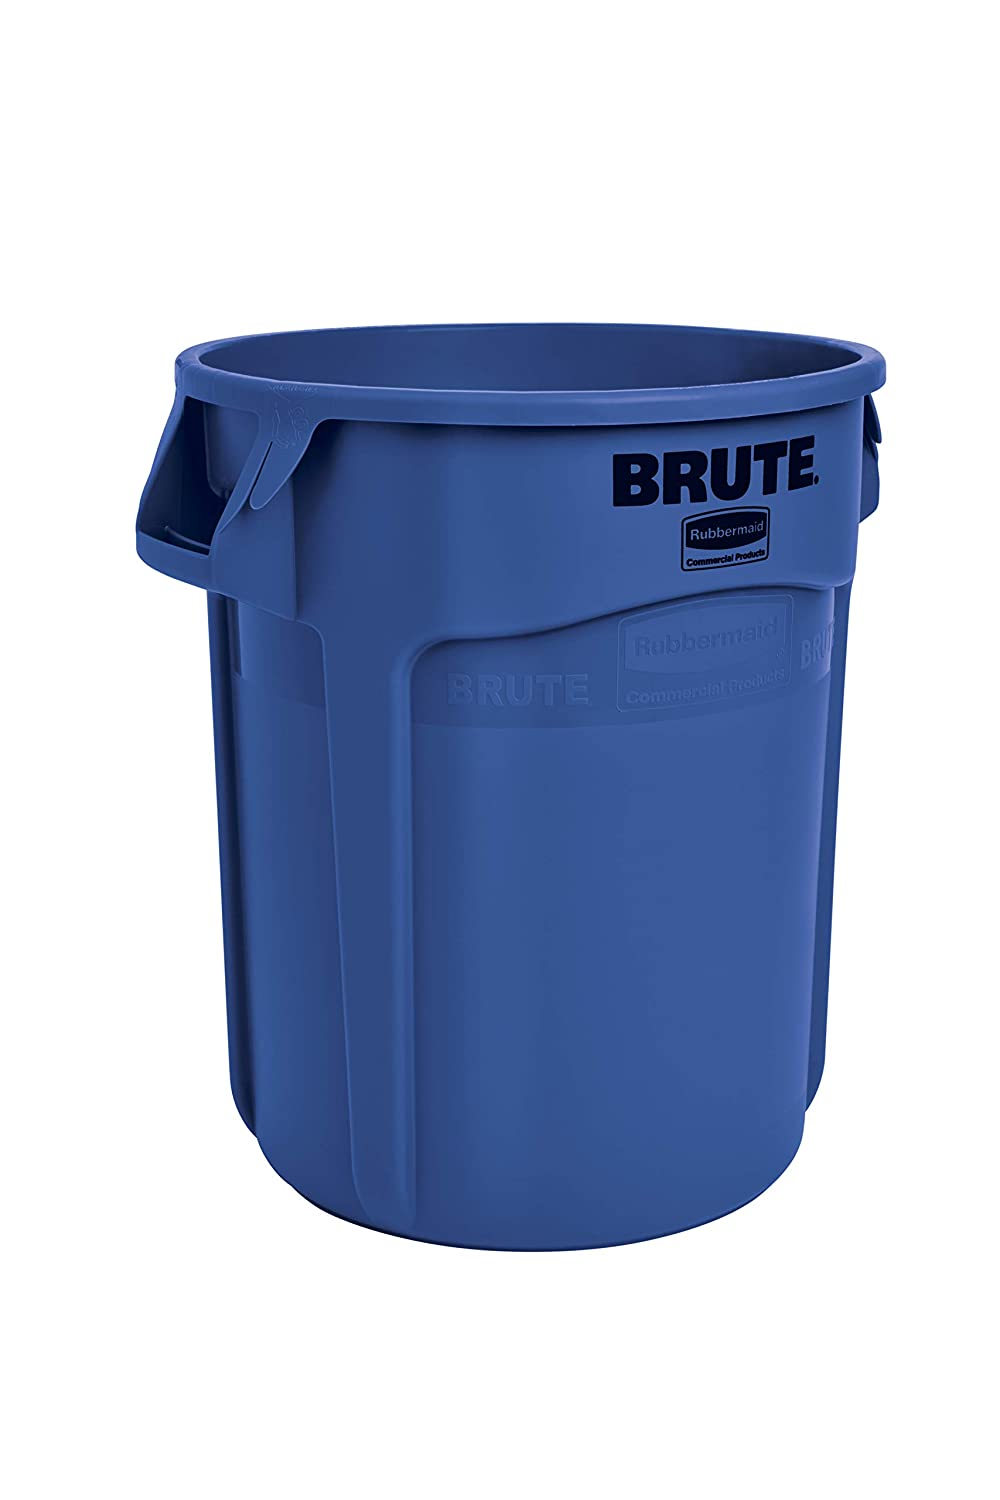 Rubbermaid Commercial Products Brute Heavy-Duty Round Waste/Utility Container with Venting Channels, 20-Gallon, Blue (FG262000BLUE)